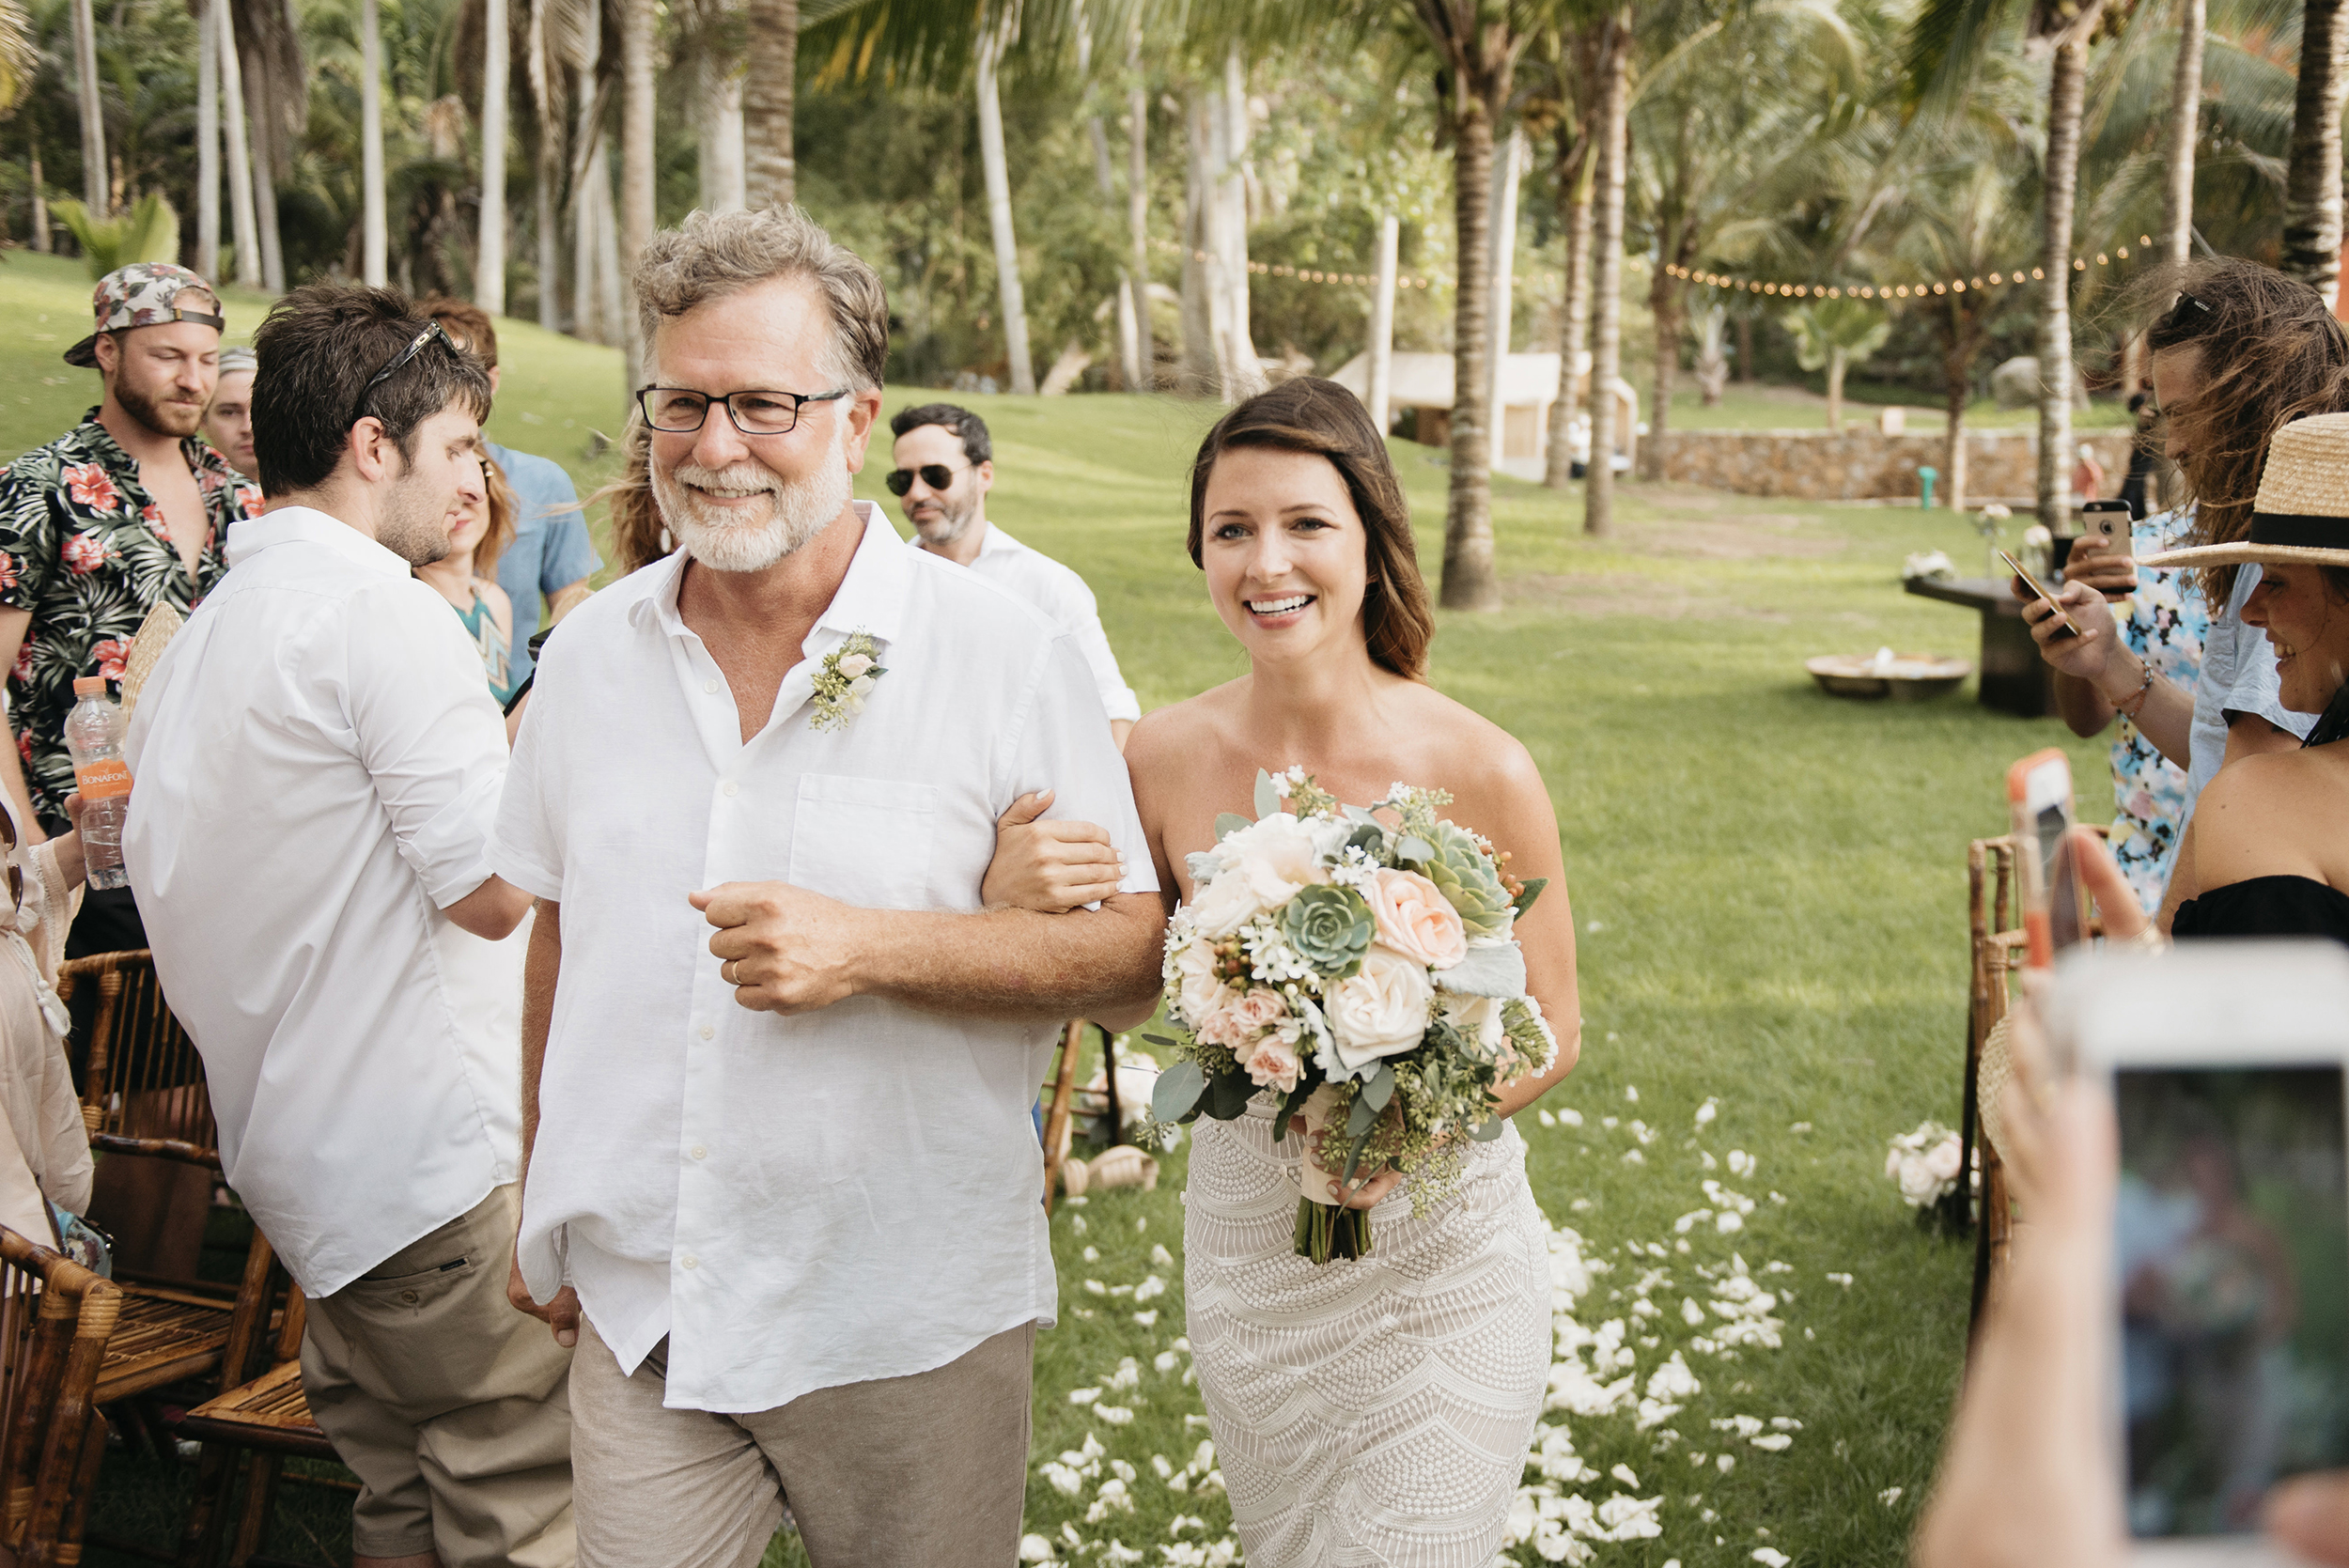 Father walks bride down wedding aisle photography by Sayulita Destination wedding photographers Colby and Jess colbyandjess.com